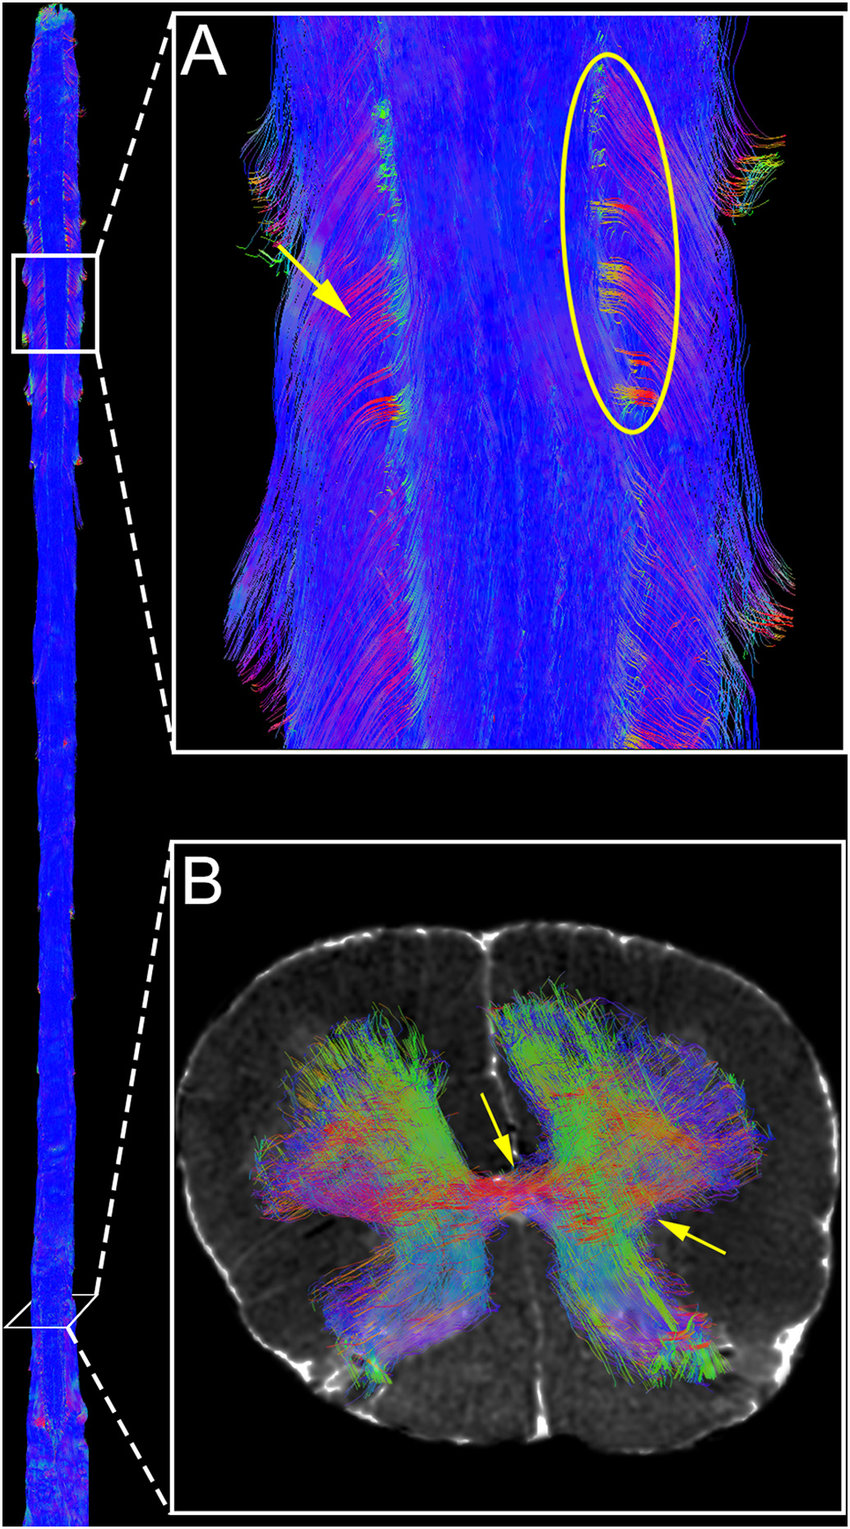 medium resolution of directionally colored diffusion tractography of the human spinal cord a dorsal view of whole spinal